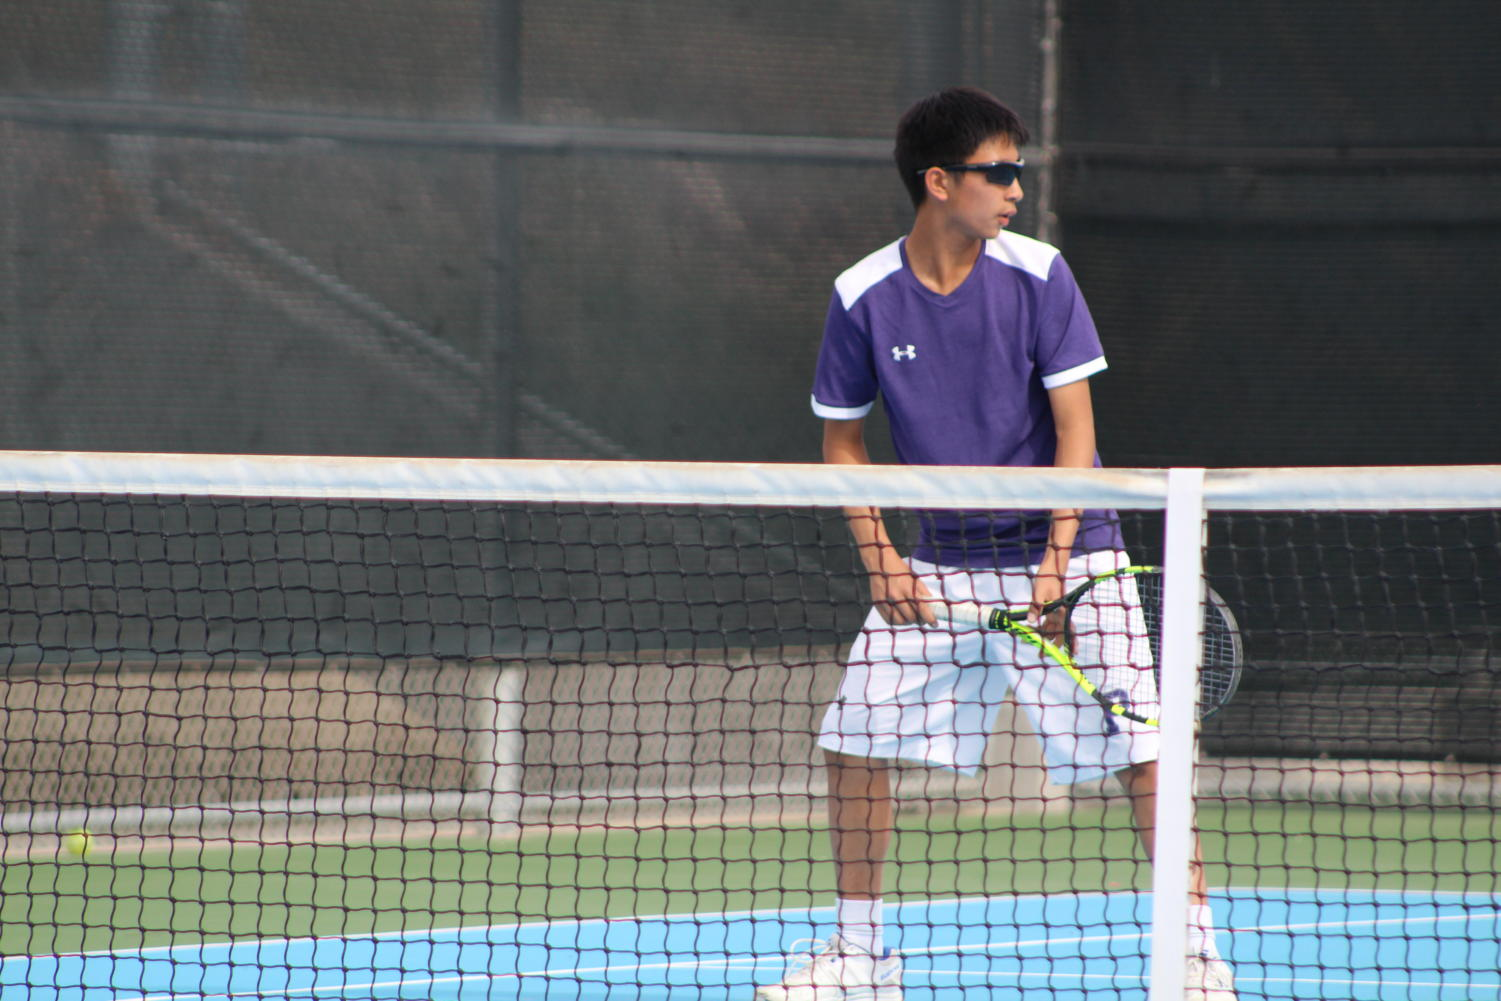 Hung anticipates for his doubles partner, co-captain and sophomore Taira Asakura, to serve the ball over to their opponents so the two pairs can begin a volley.